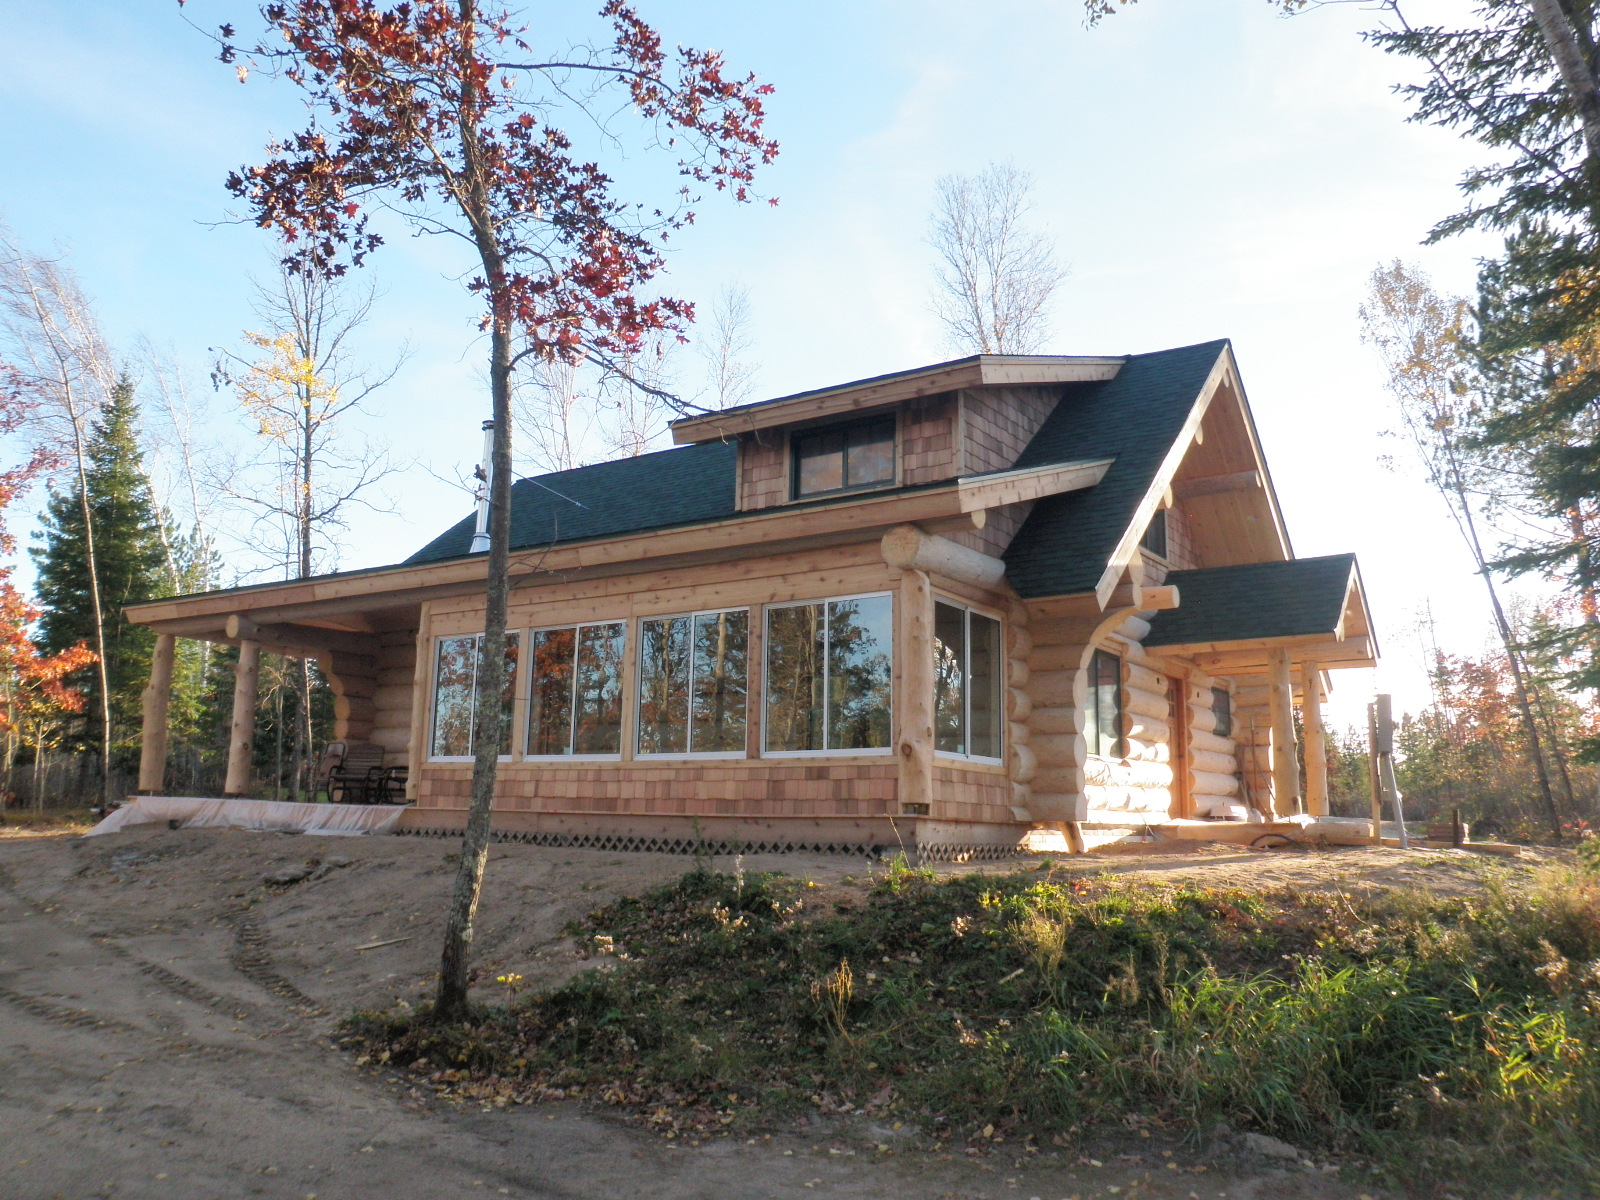 Headwaters Hideaway Andersen Log Homes Co Home Wiring Entrance Into The Arched Hallway Allows To Go From One Room Other